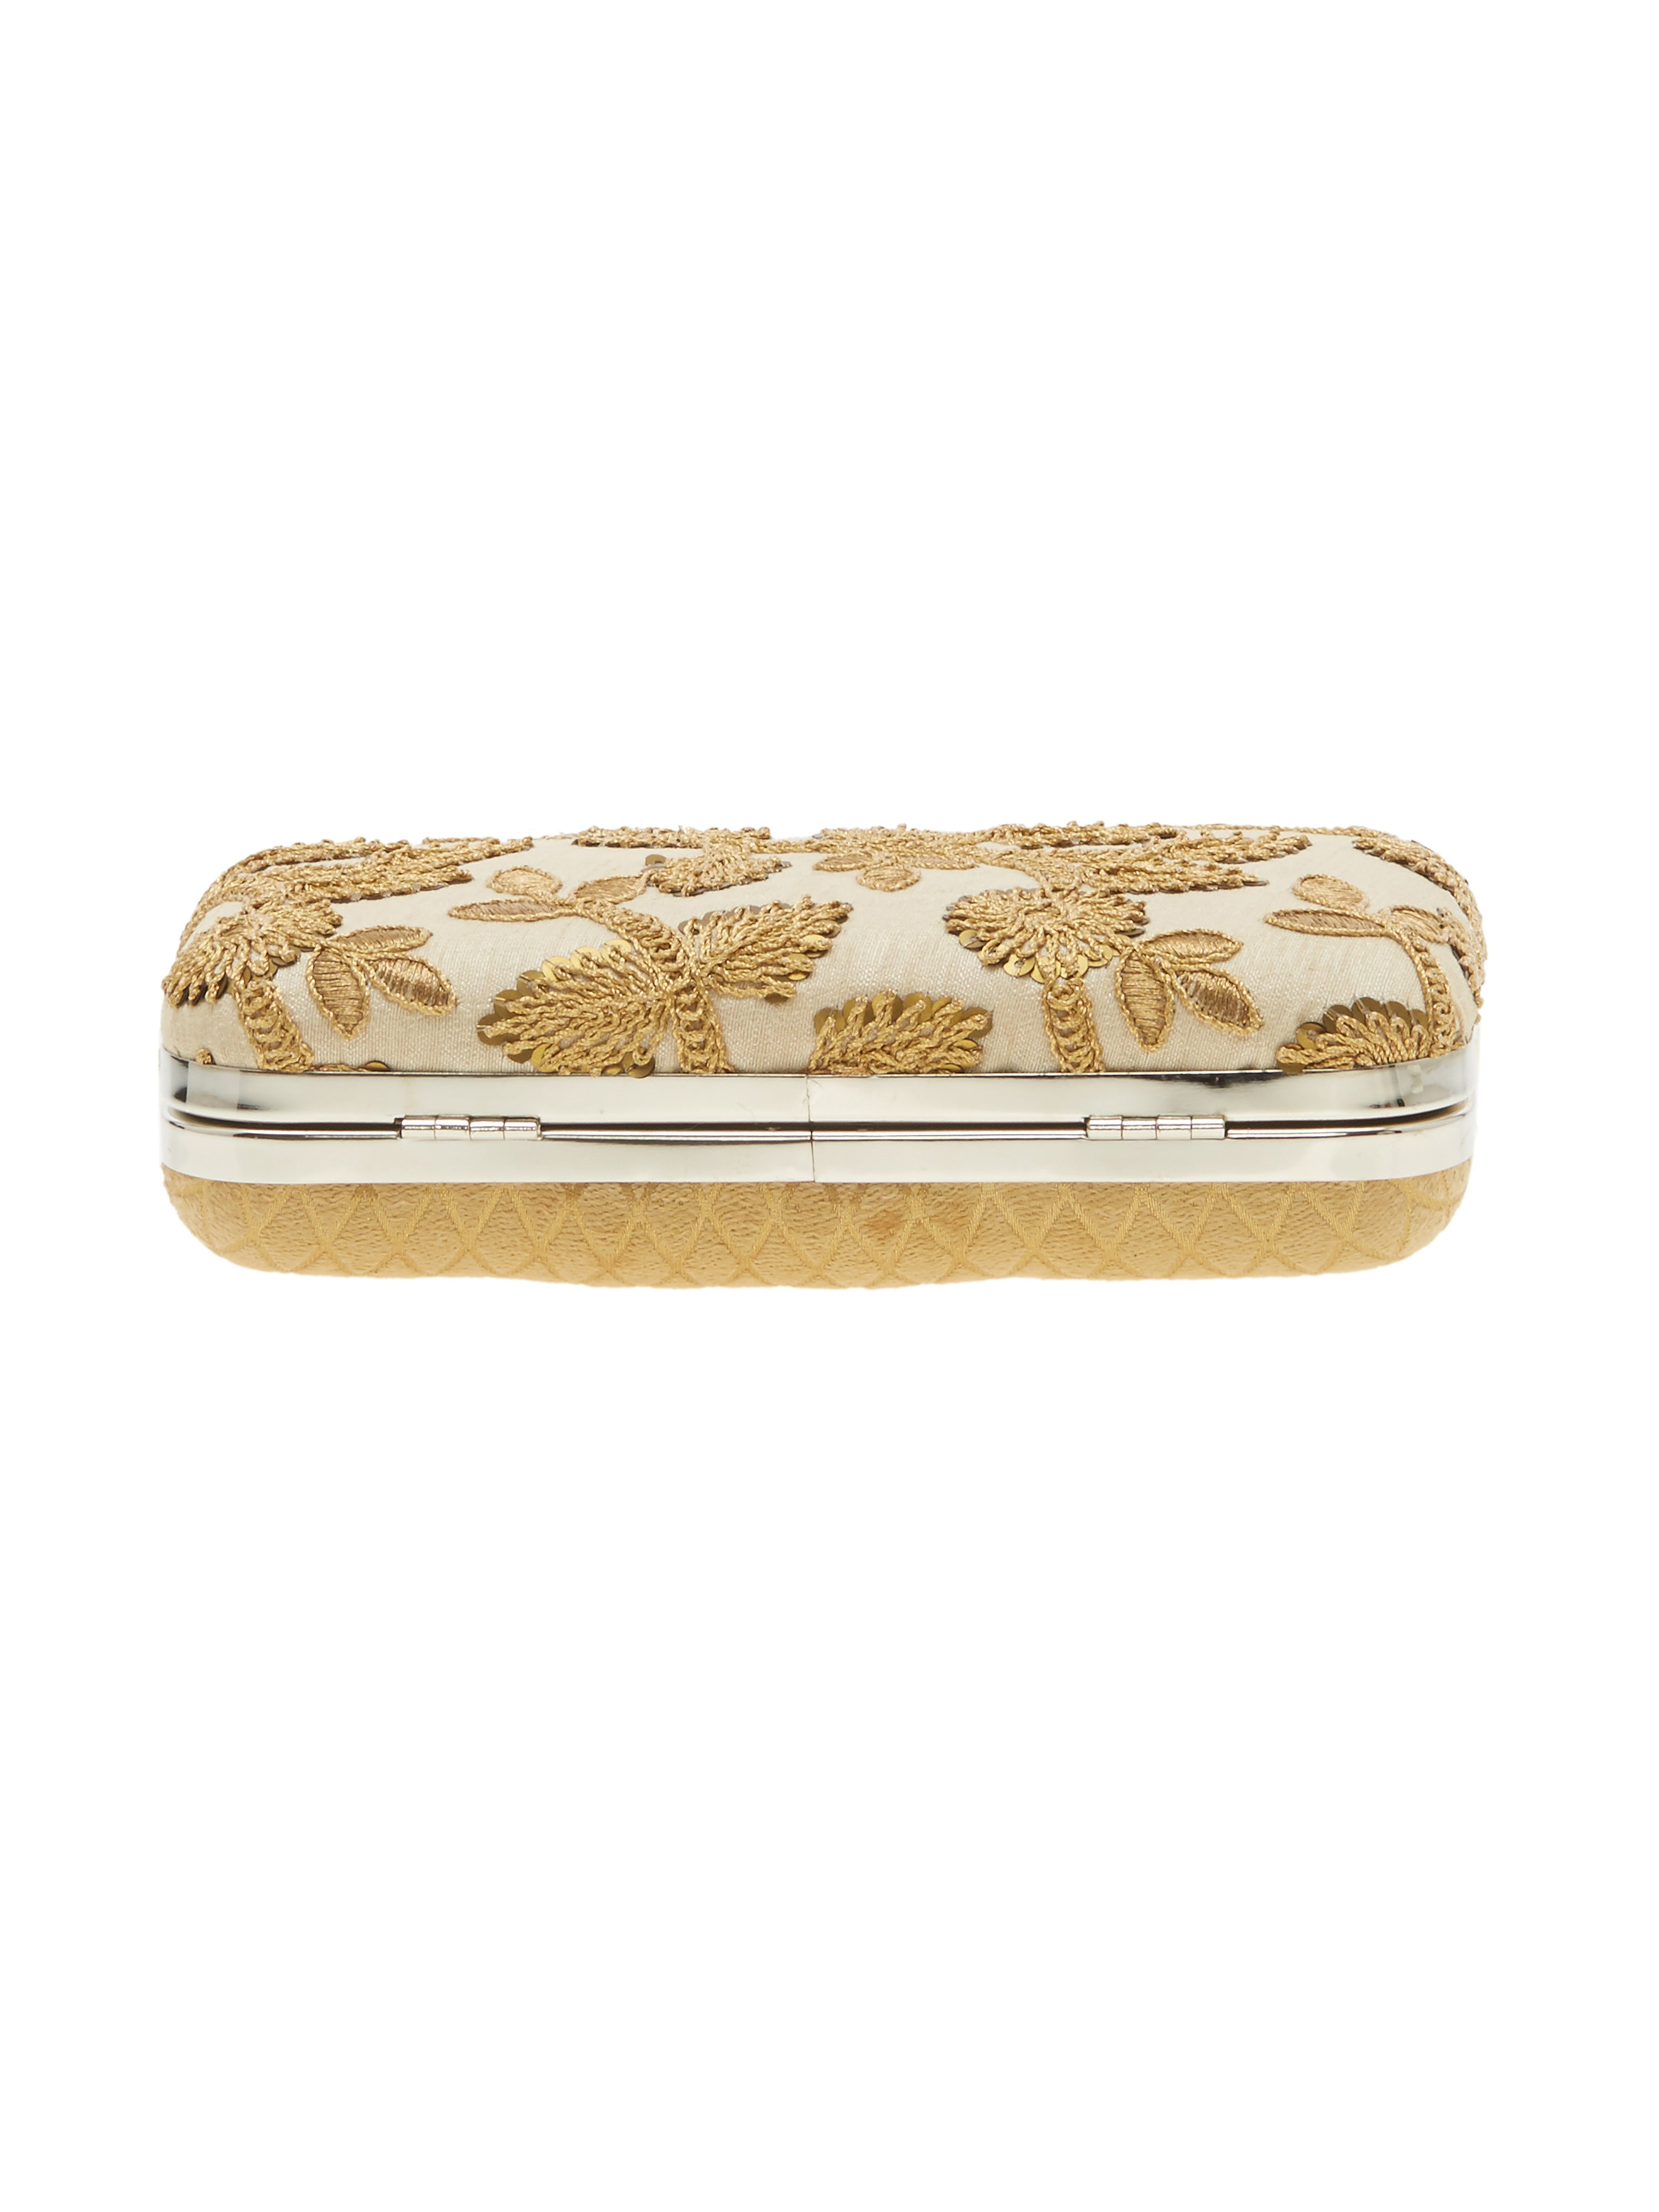 TARUSA Beige Embroidered Box Clutch